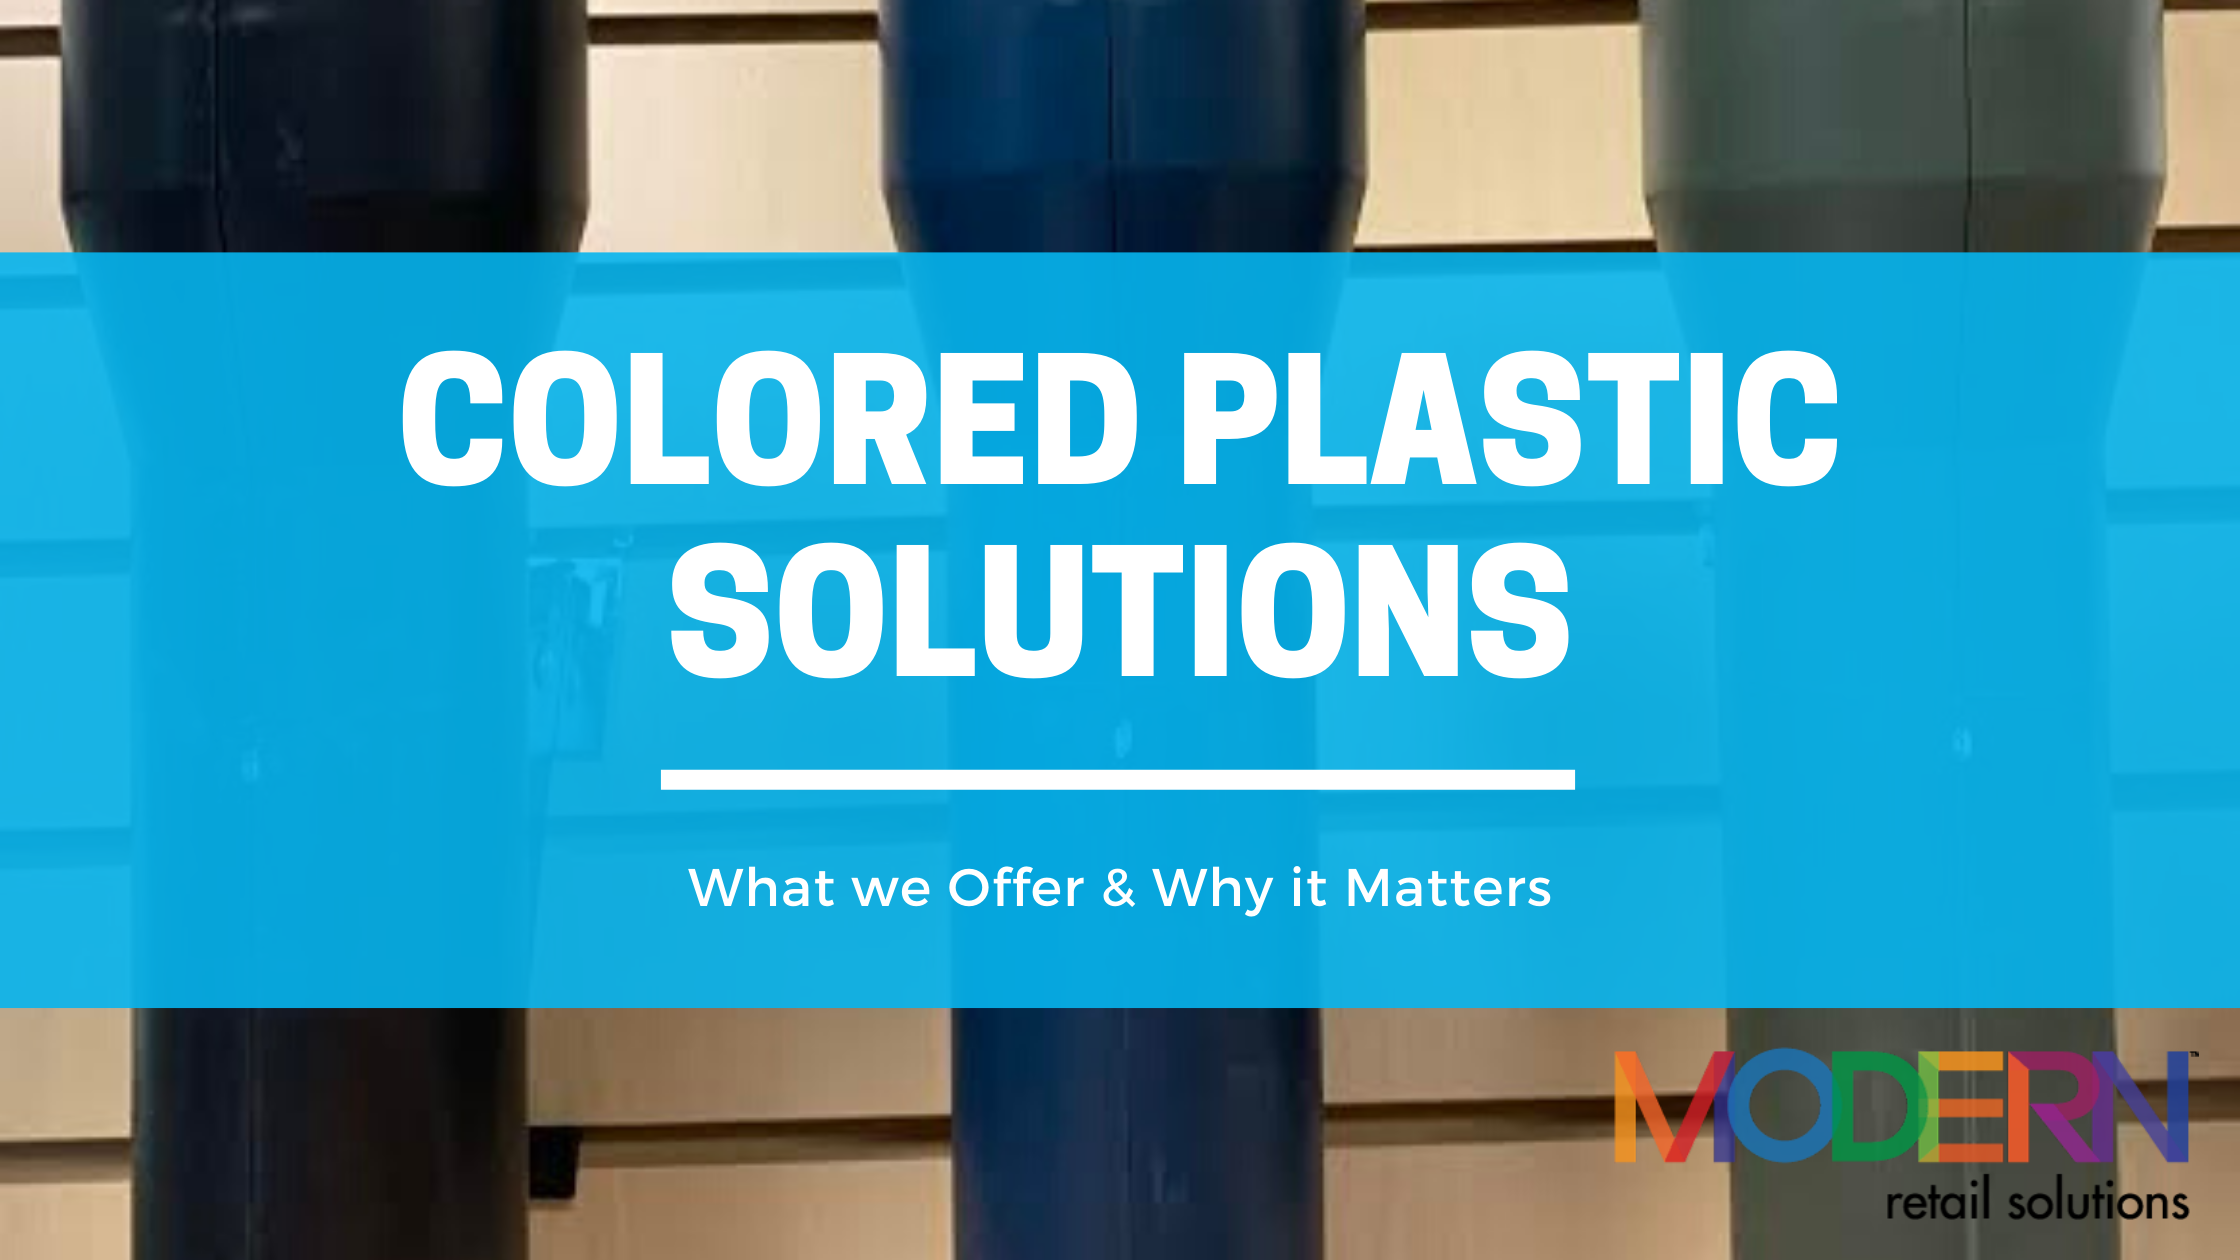 colored plastic solutions